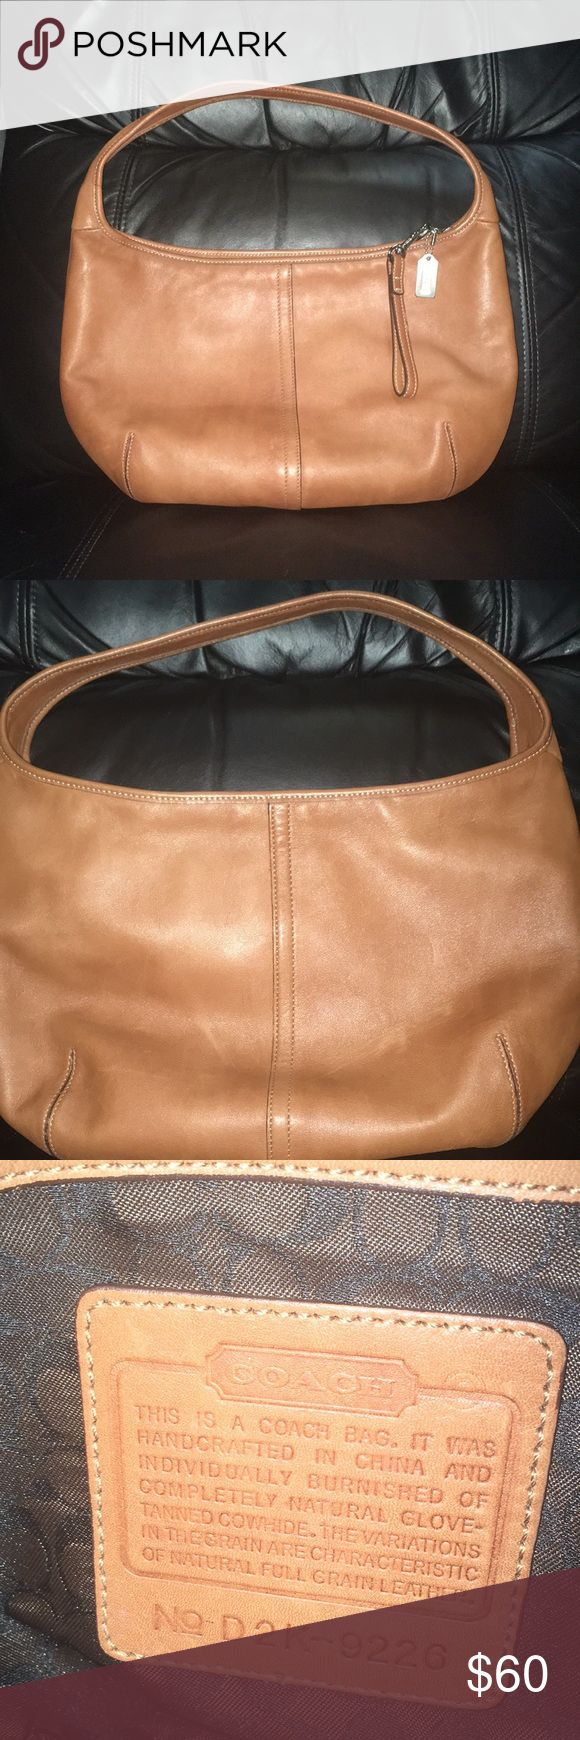 Gorgeous leather Coach hobo bag, camel color. It is in excellent used condition inside and out. The dimensions are approximately 13 x 9 x 3. Coach Bags Hobos